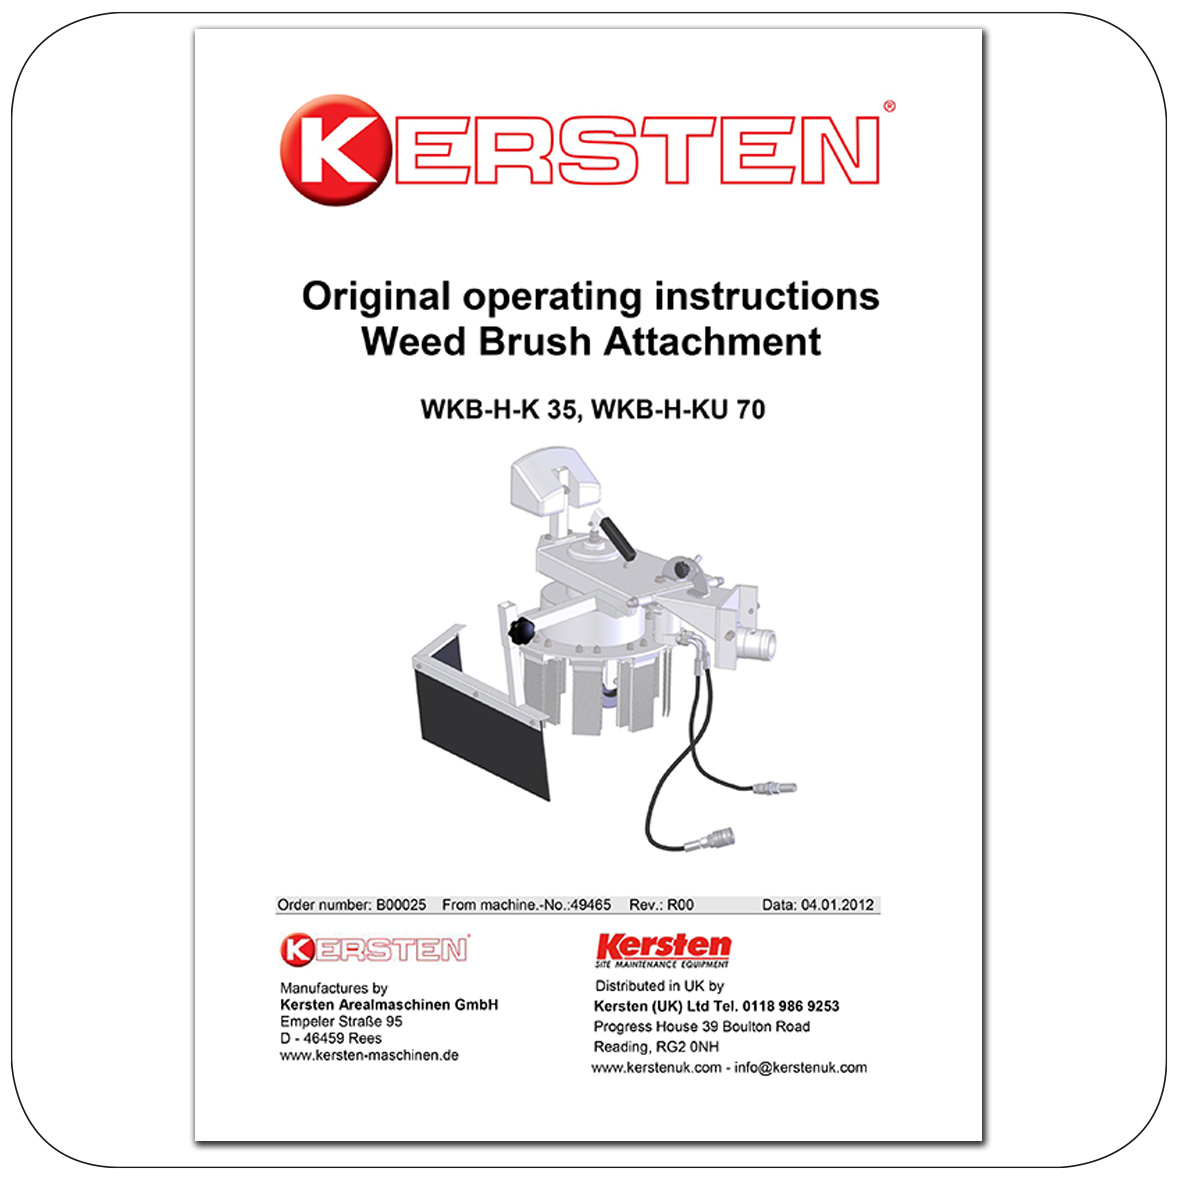 Instruction Manual - Weedbrush WKB-H-K 35, WKB-H-KU 70 - Attachments - B00025